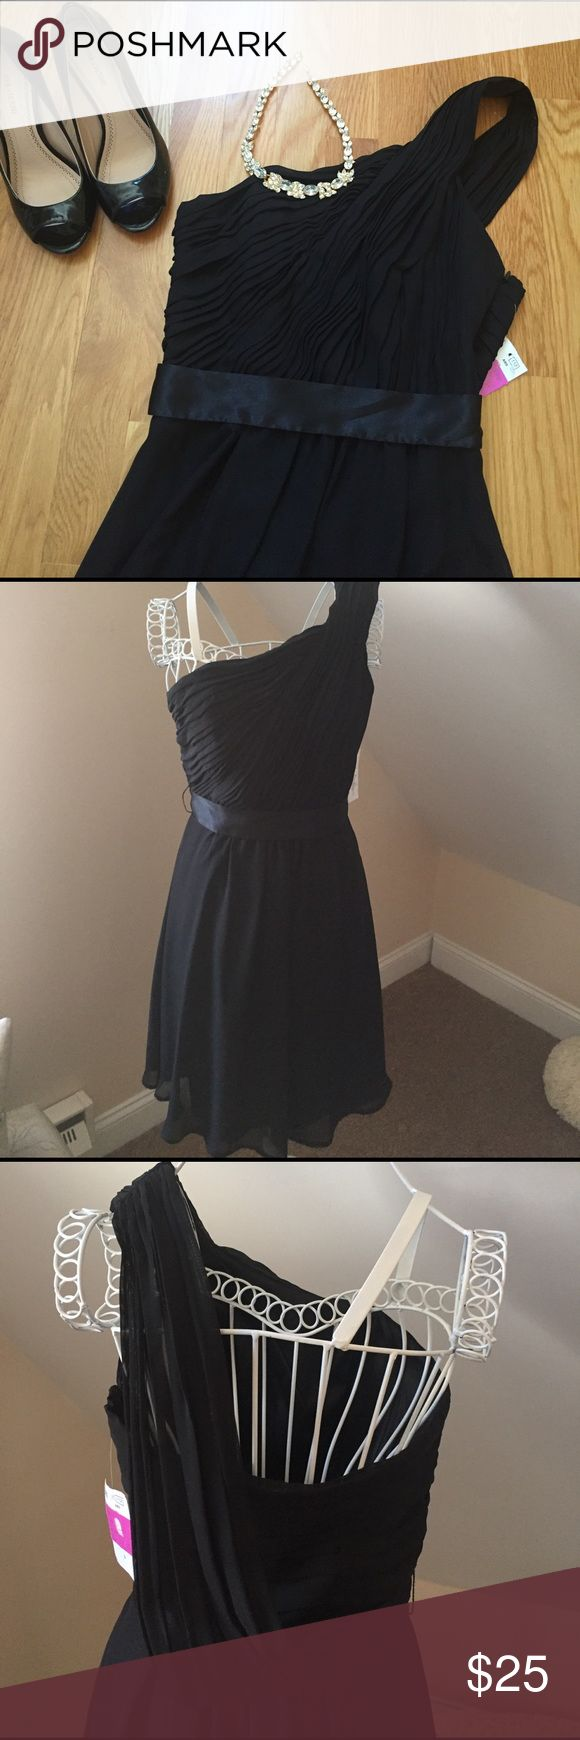 ABS Little Black Dress Sophisticated Black  one shoulder dress with pleated bodice, satin trim waist and Aline skirt. The Open back with drape gives it just the right look. Dressis fully lined NWT. ABS Allen Schwartz Dresses Midi